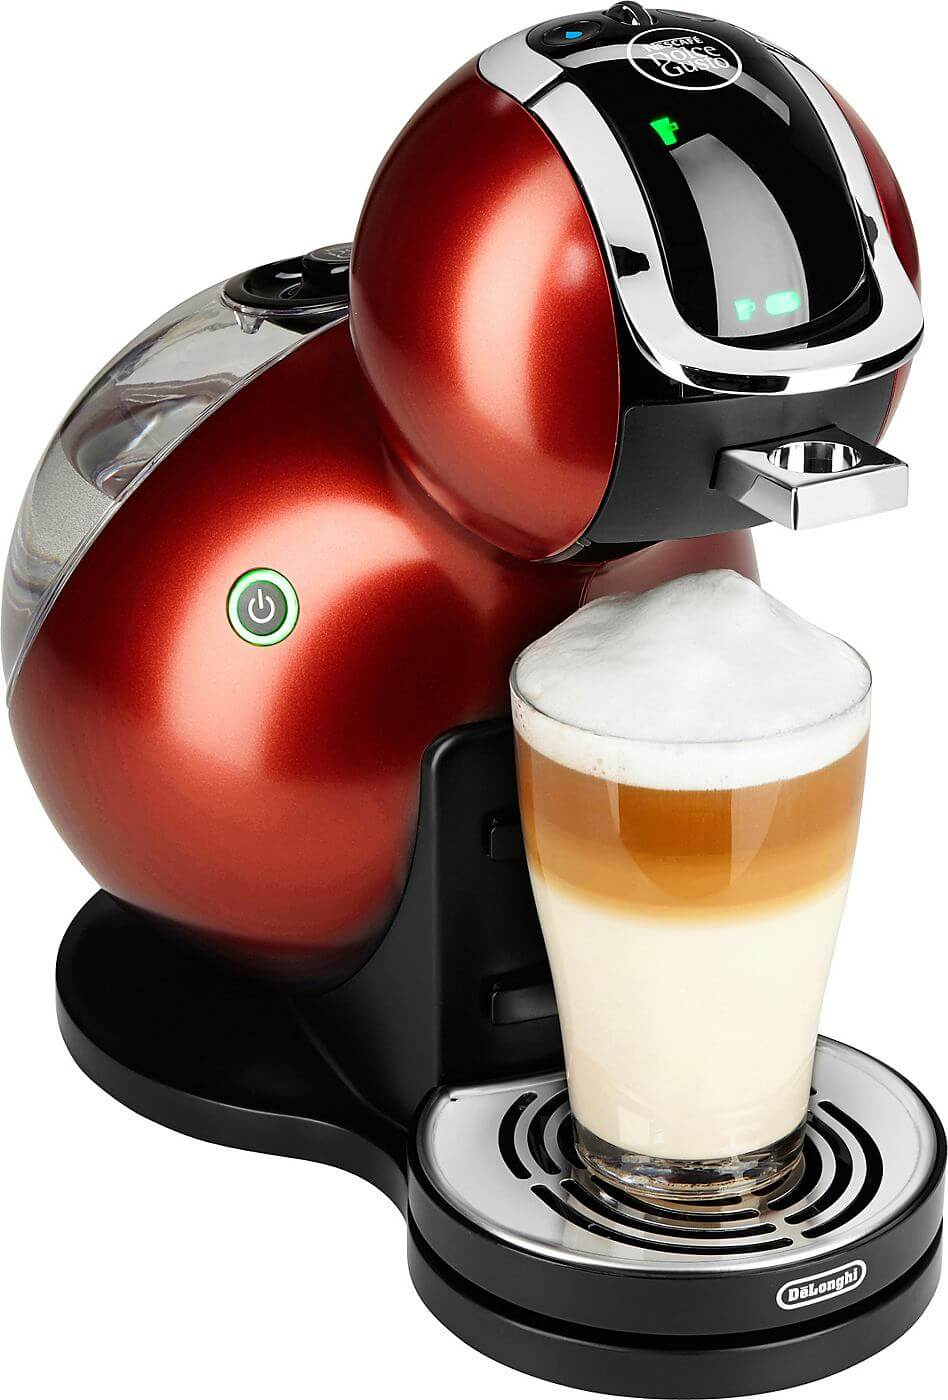 nescaf dolce gusto kapselmaschine melody 3 automatic edg 626 r. Black Bedroom Furniture Sets. Home Design Ideas